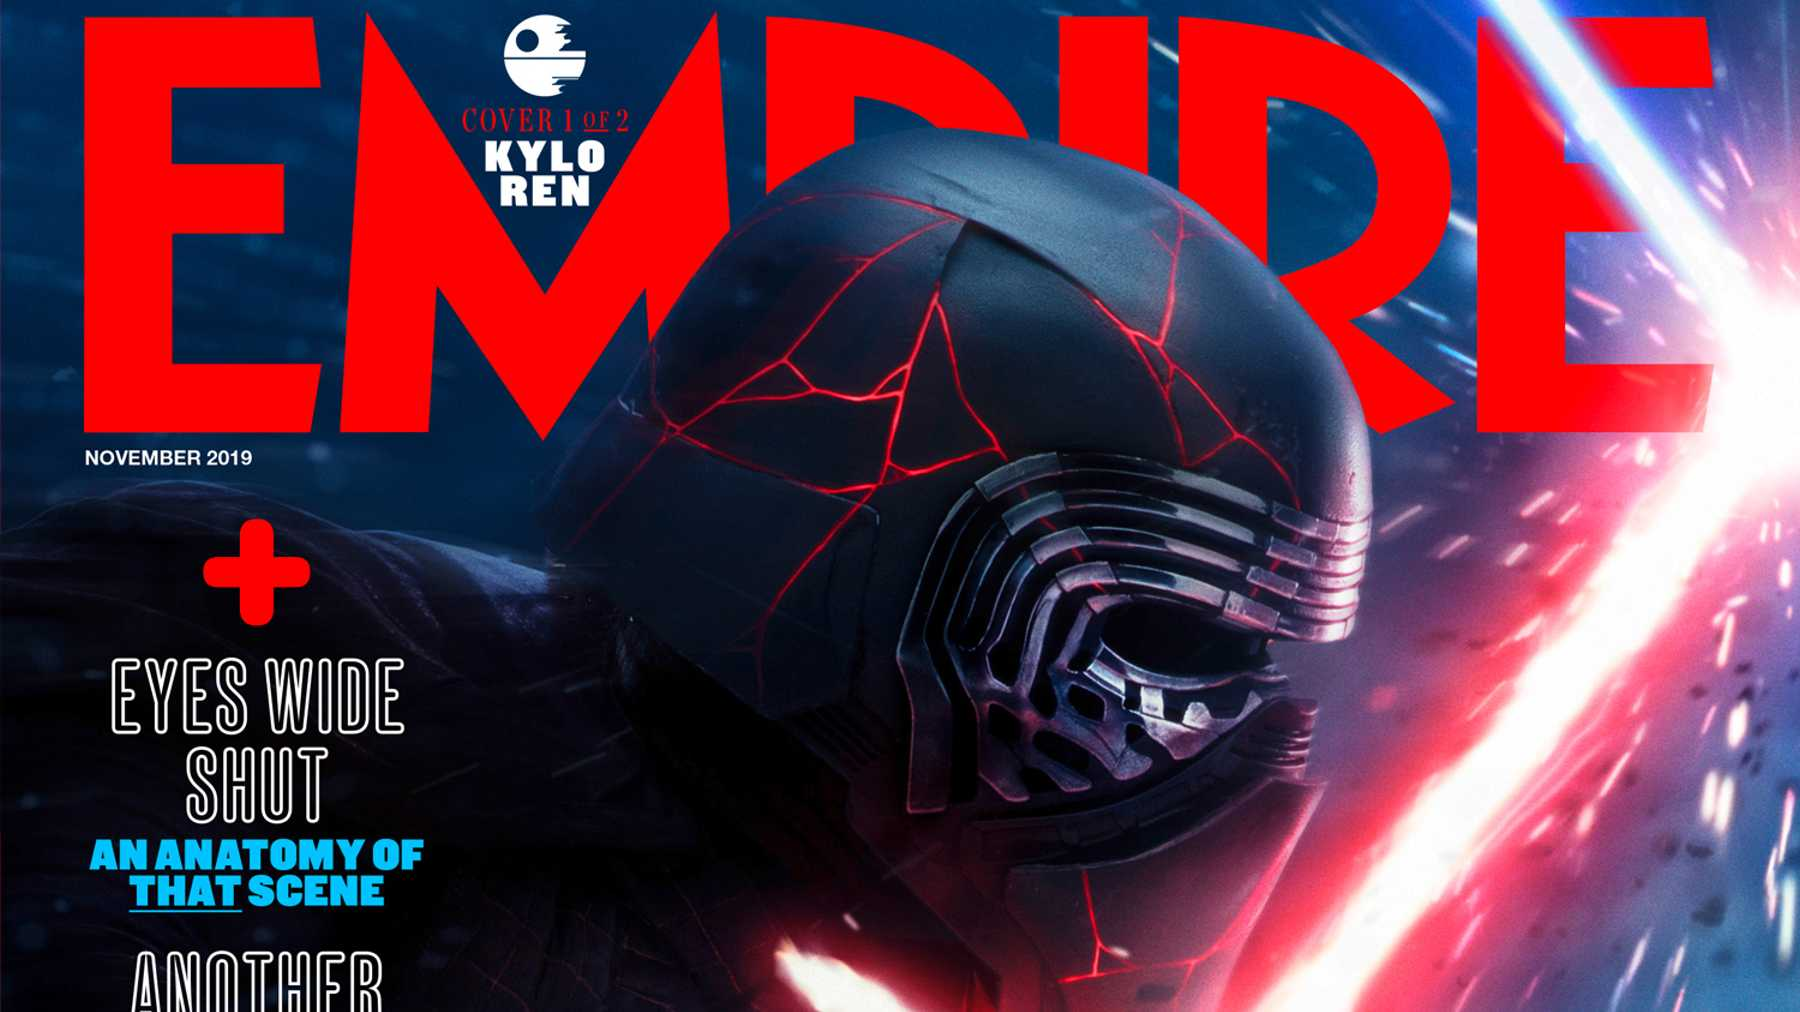 Empire Issue Preview Star Wars The Rise Of Skywalker Martin Scorsese Jay Silent Bob Strike Back Knives Out Ken Loach Movies Empire